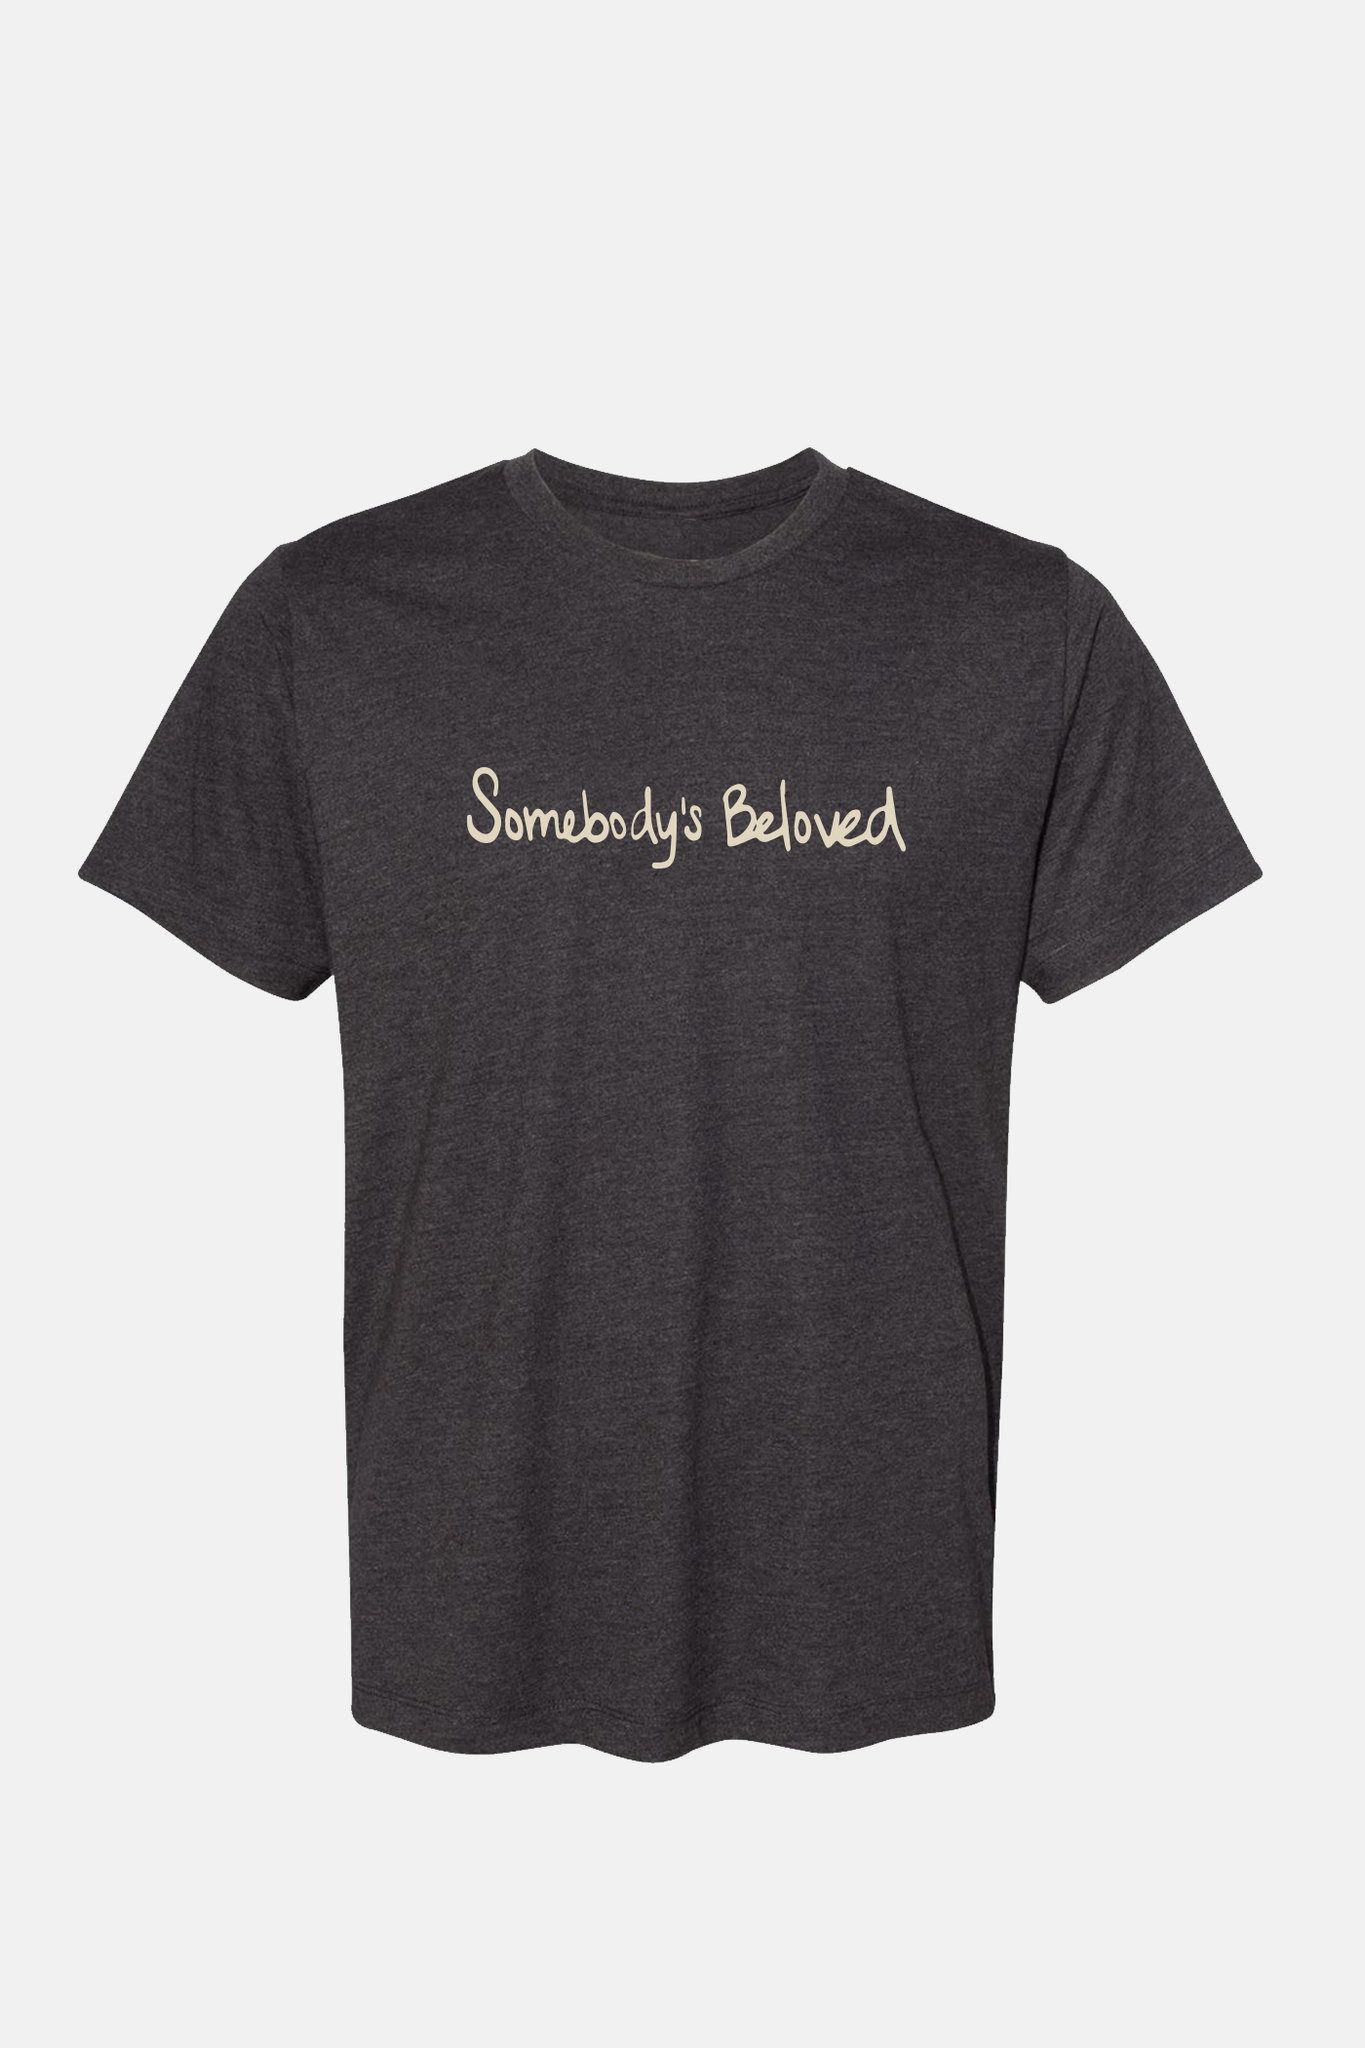 MILCK Somebodys Beloved Lightweight Vintage Black Soft Tee